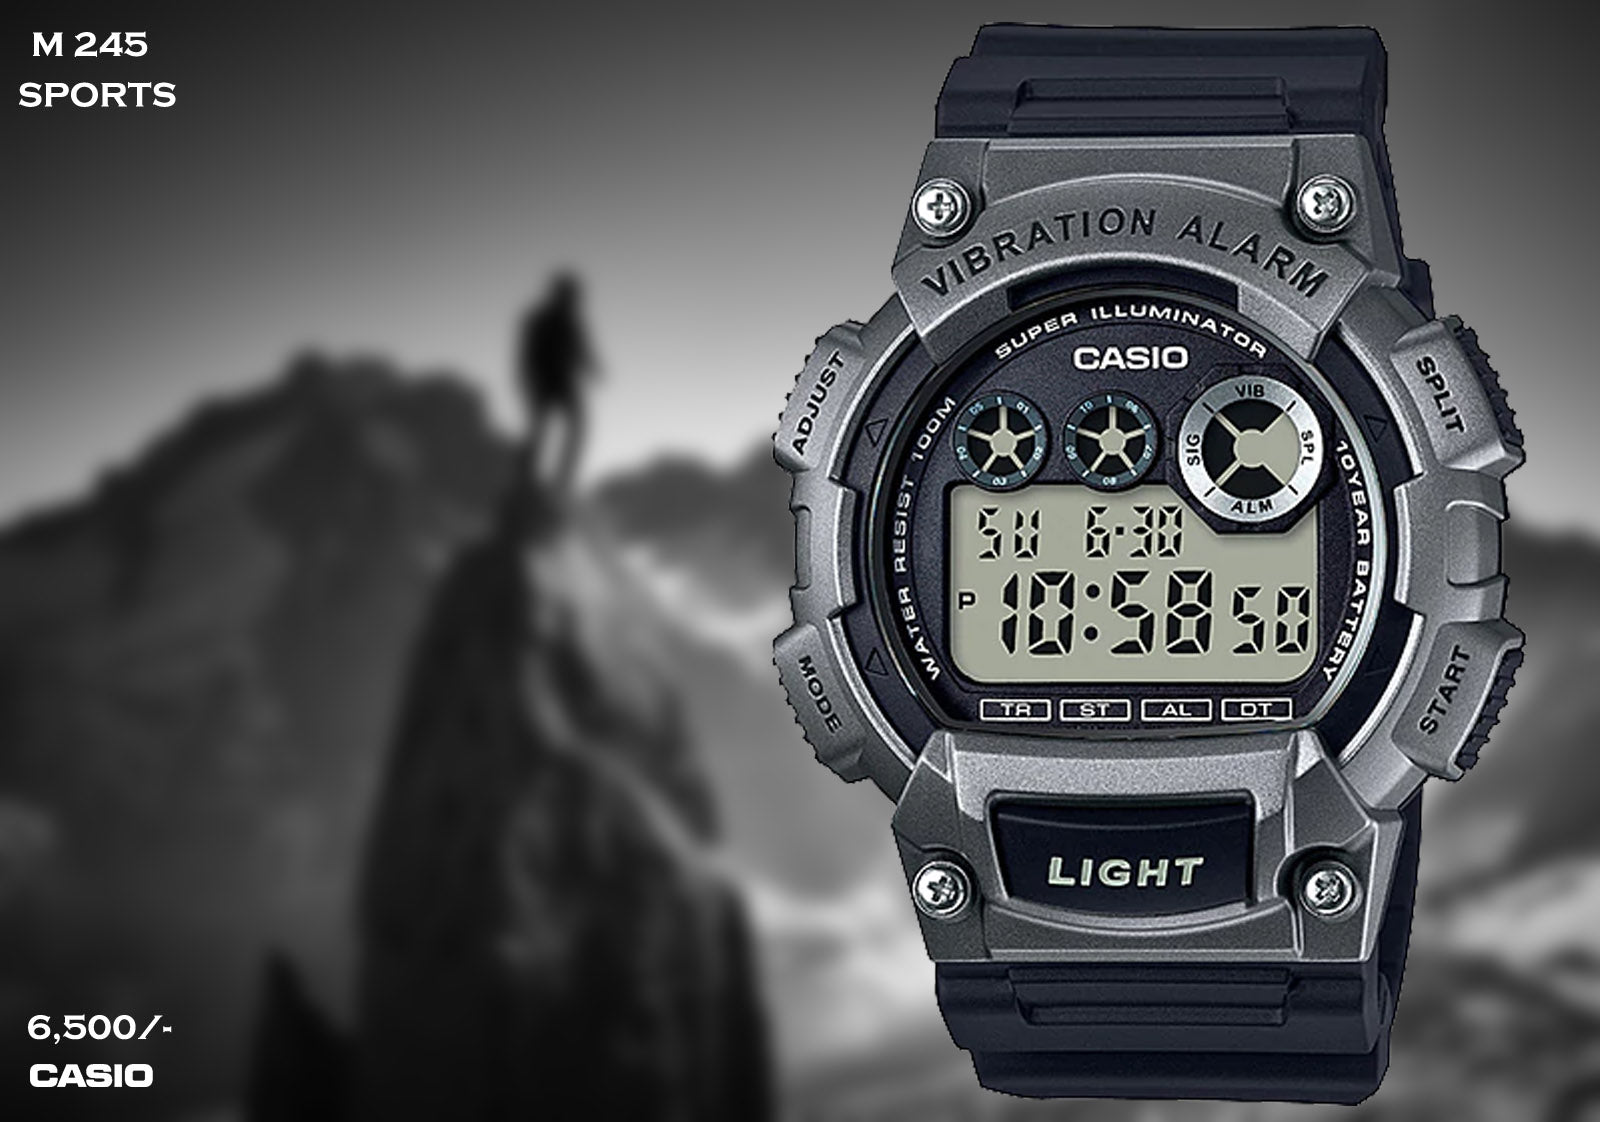 Casio Sport Digital Timepiece M 245